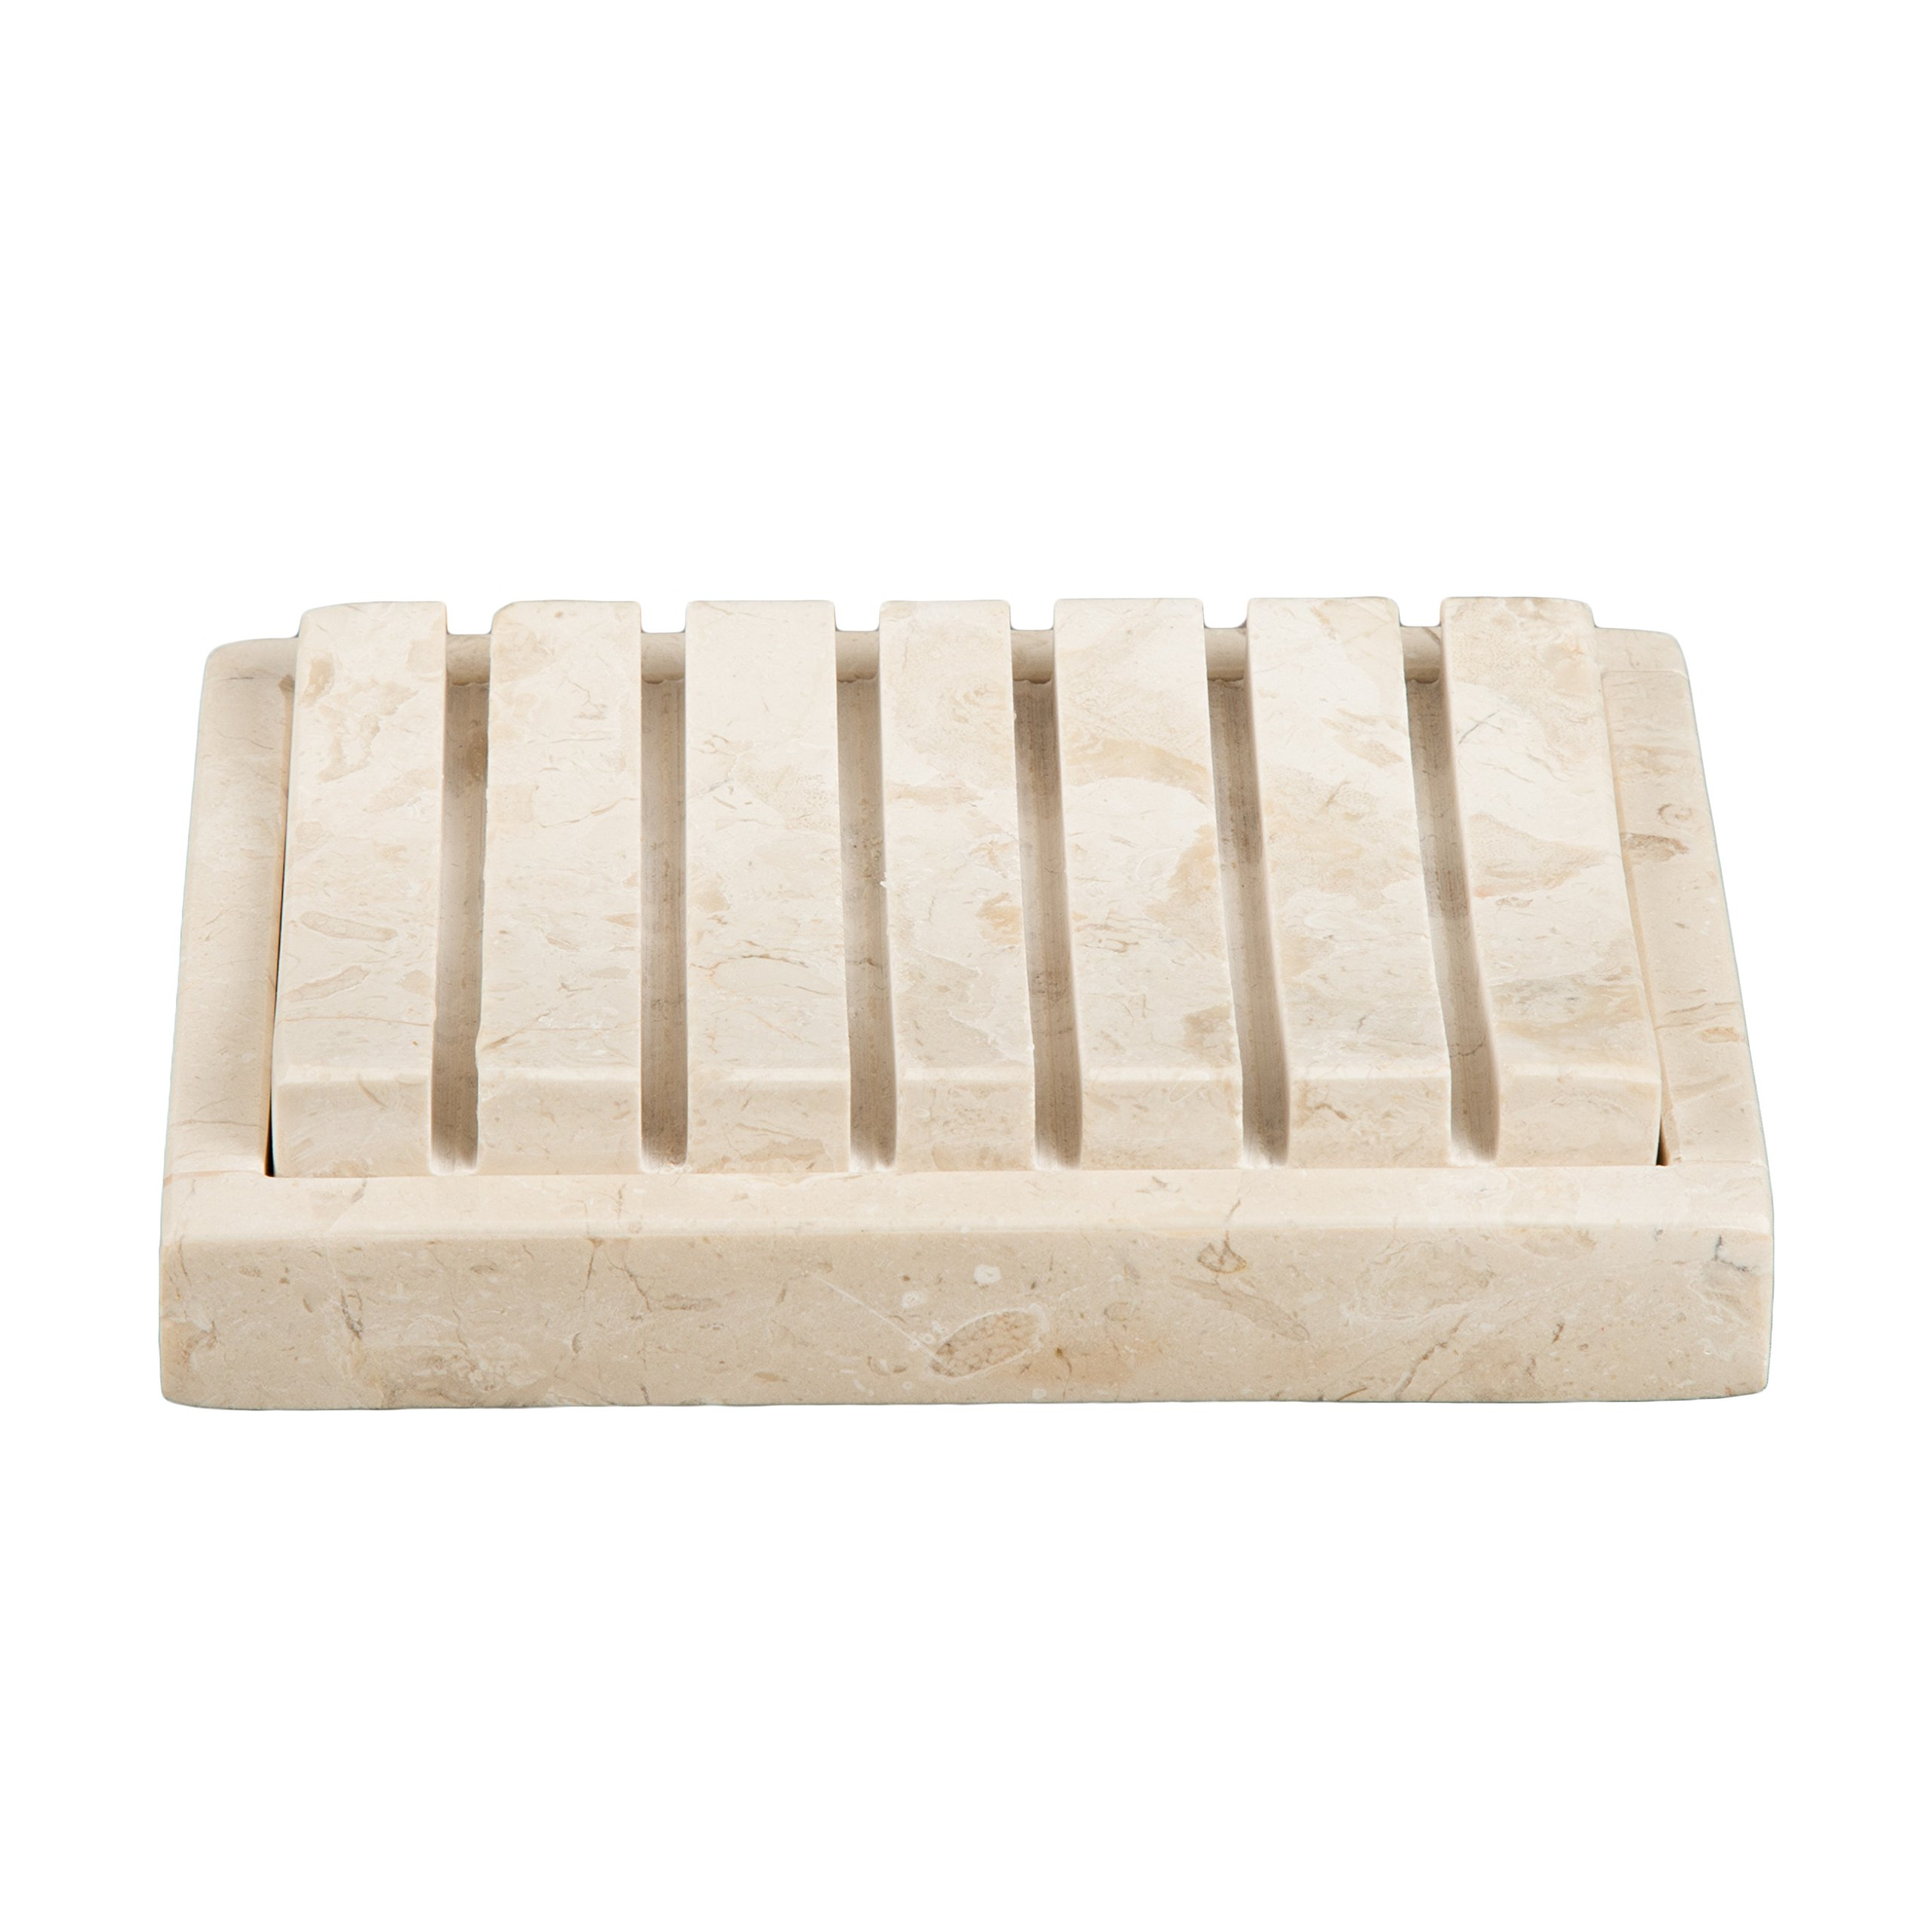 Creative Home Natural Champagne Marble Stone SPA Collection 2 Piece Bar Soap Dish, Soap Tray by Creative Home (Image #1)